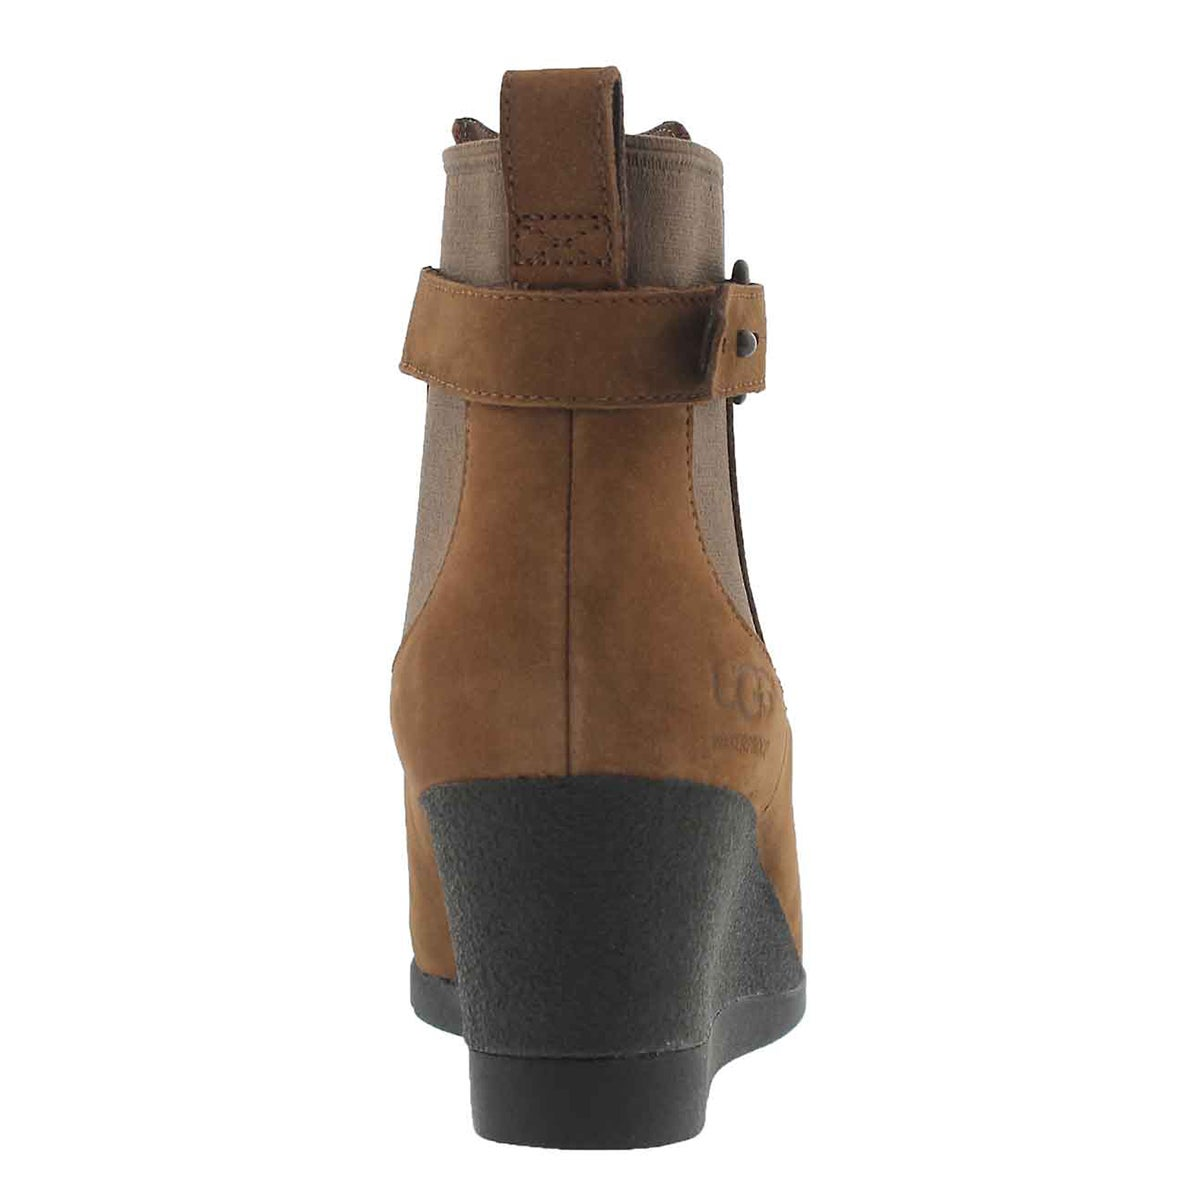 Lds Indra stout wtpf wedge ankle boot